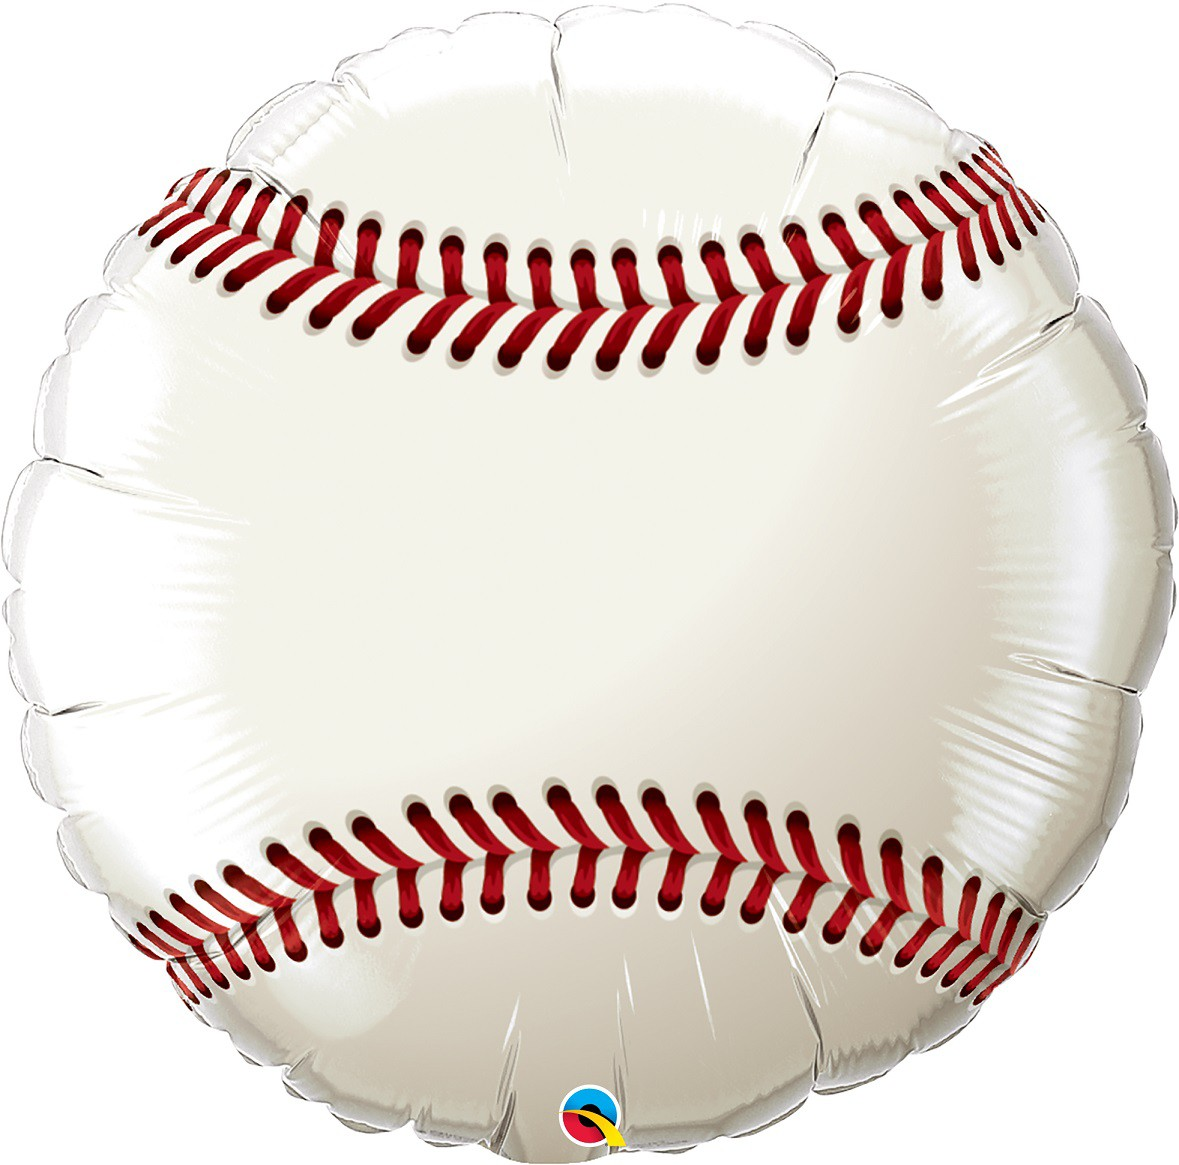 BALÃO METALIZADO REDONDO BASEBALL - 18 POLEGADAS - QUALATEX  #71603